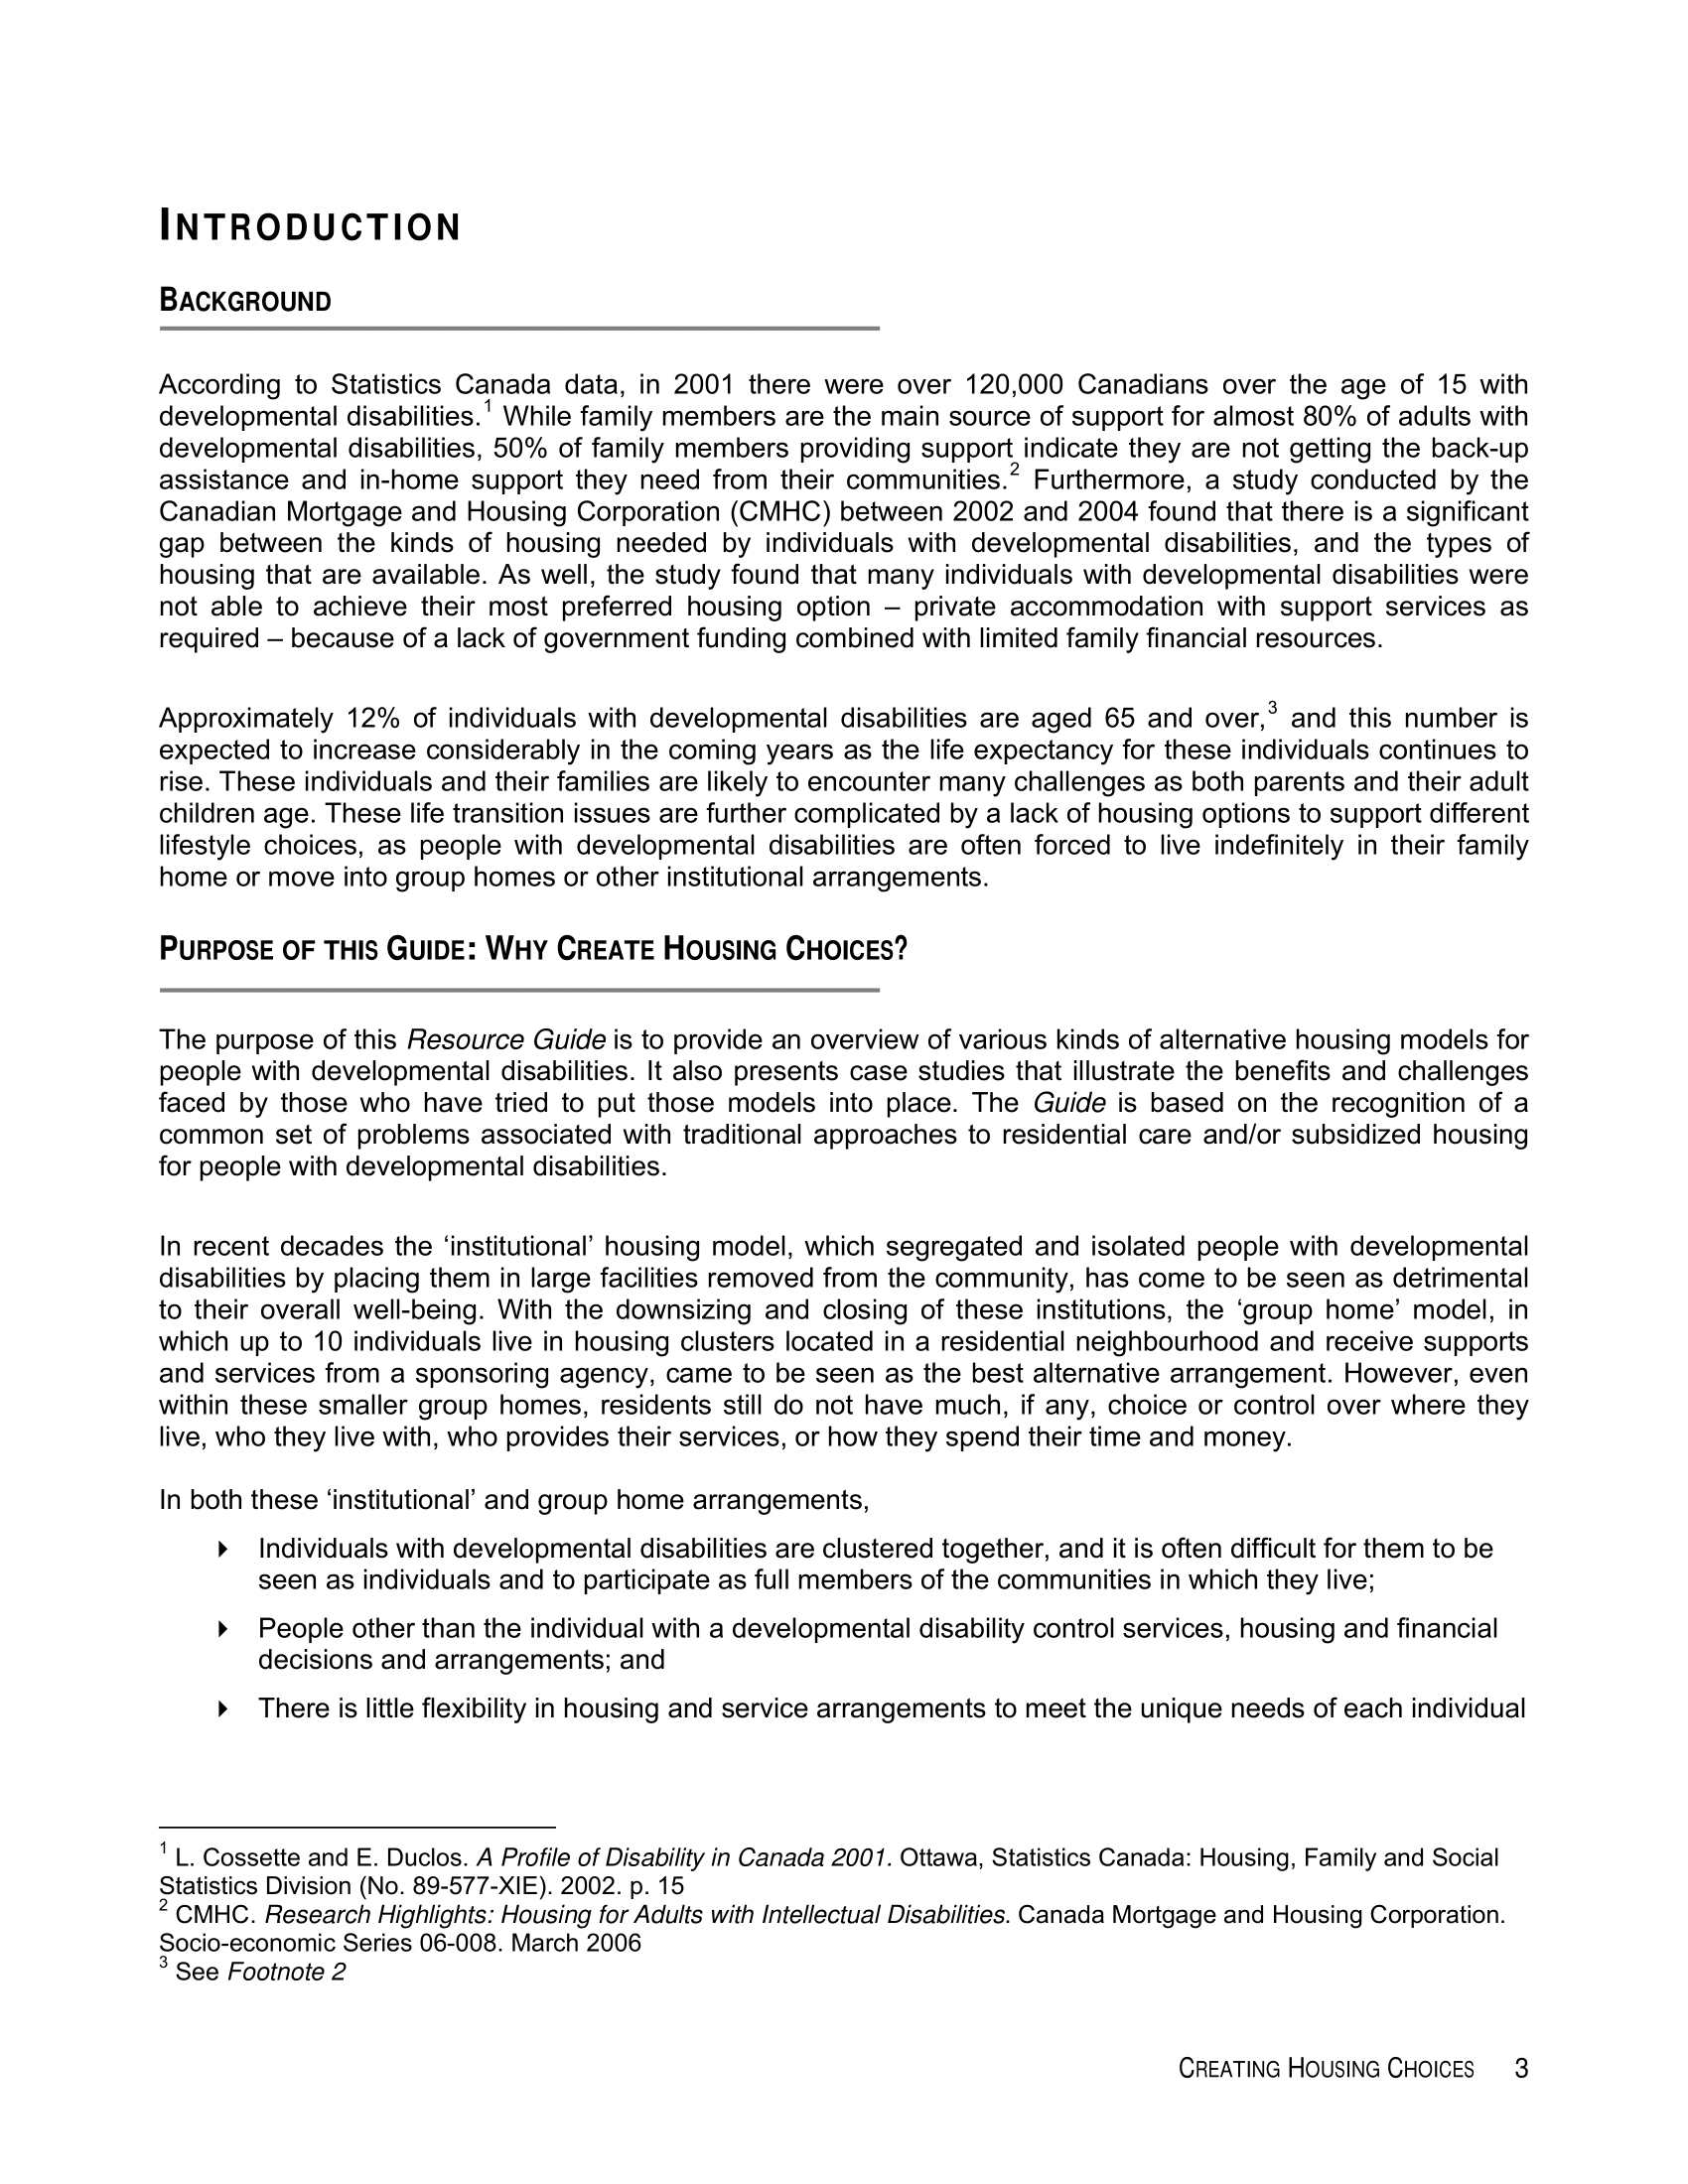 Creating Housing Choices - 2006-04.png